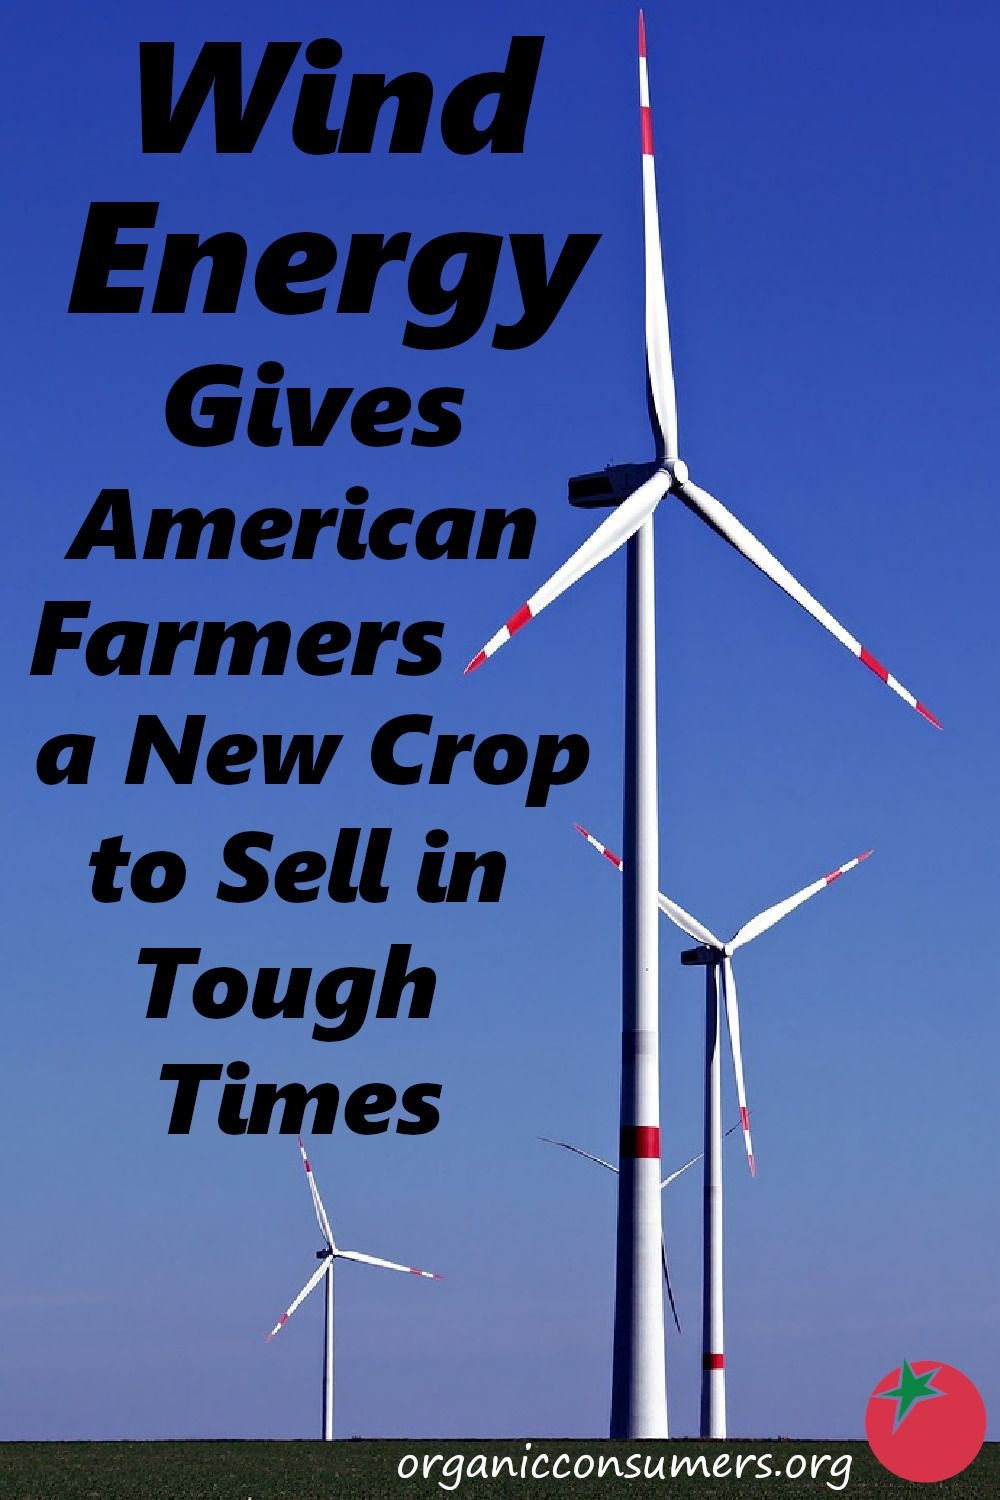 Wind Energy Gives American Farmers a New Crop to Sell in